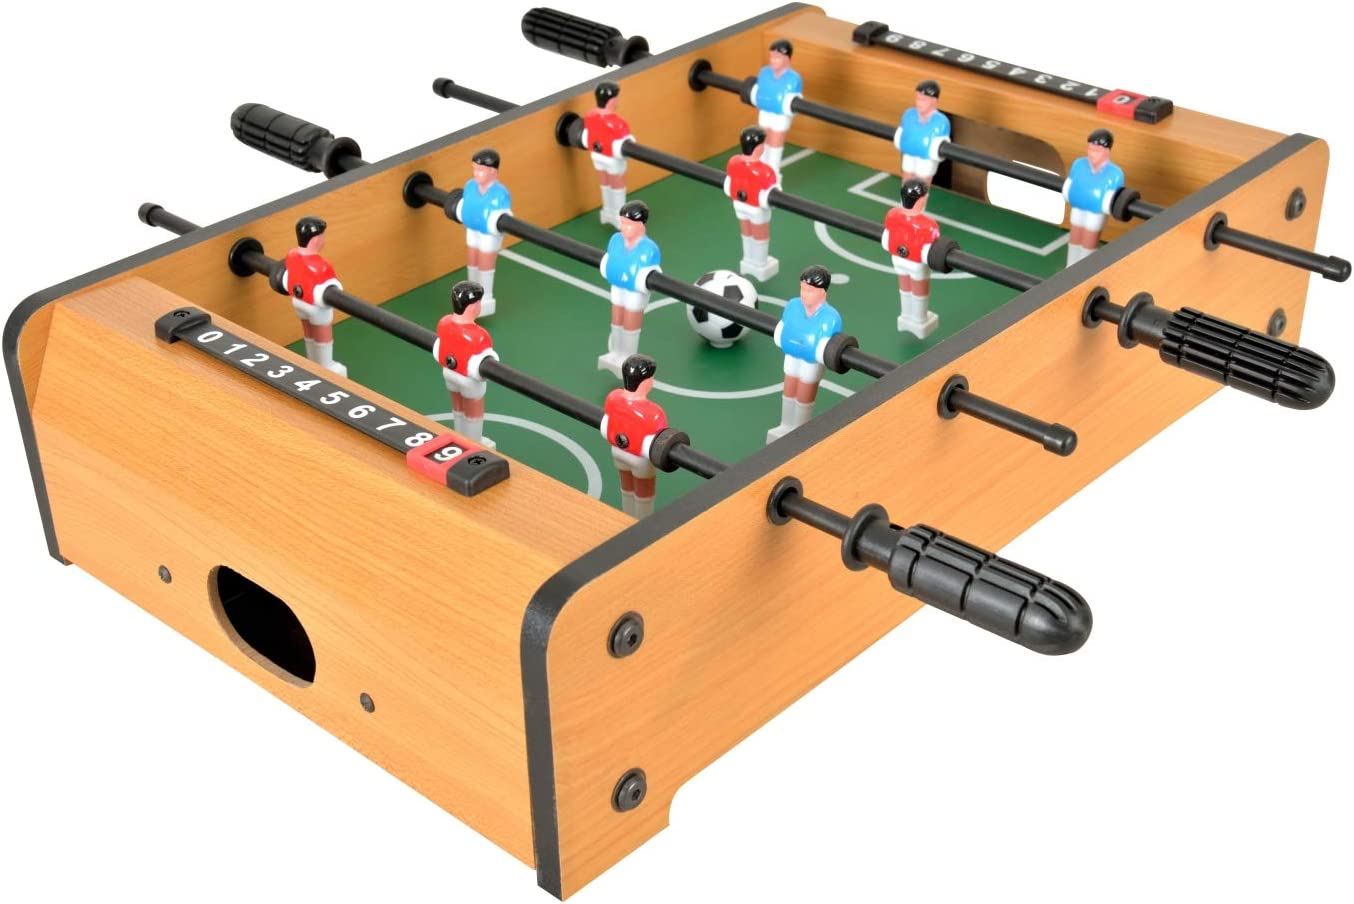 WIN.MAX Mini Foosball Table, 20-Inch Table Top Football/Soccer Game Table for Kids, Easy to Store